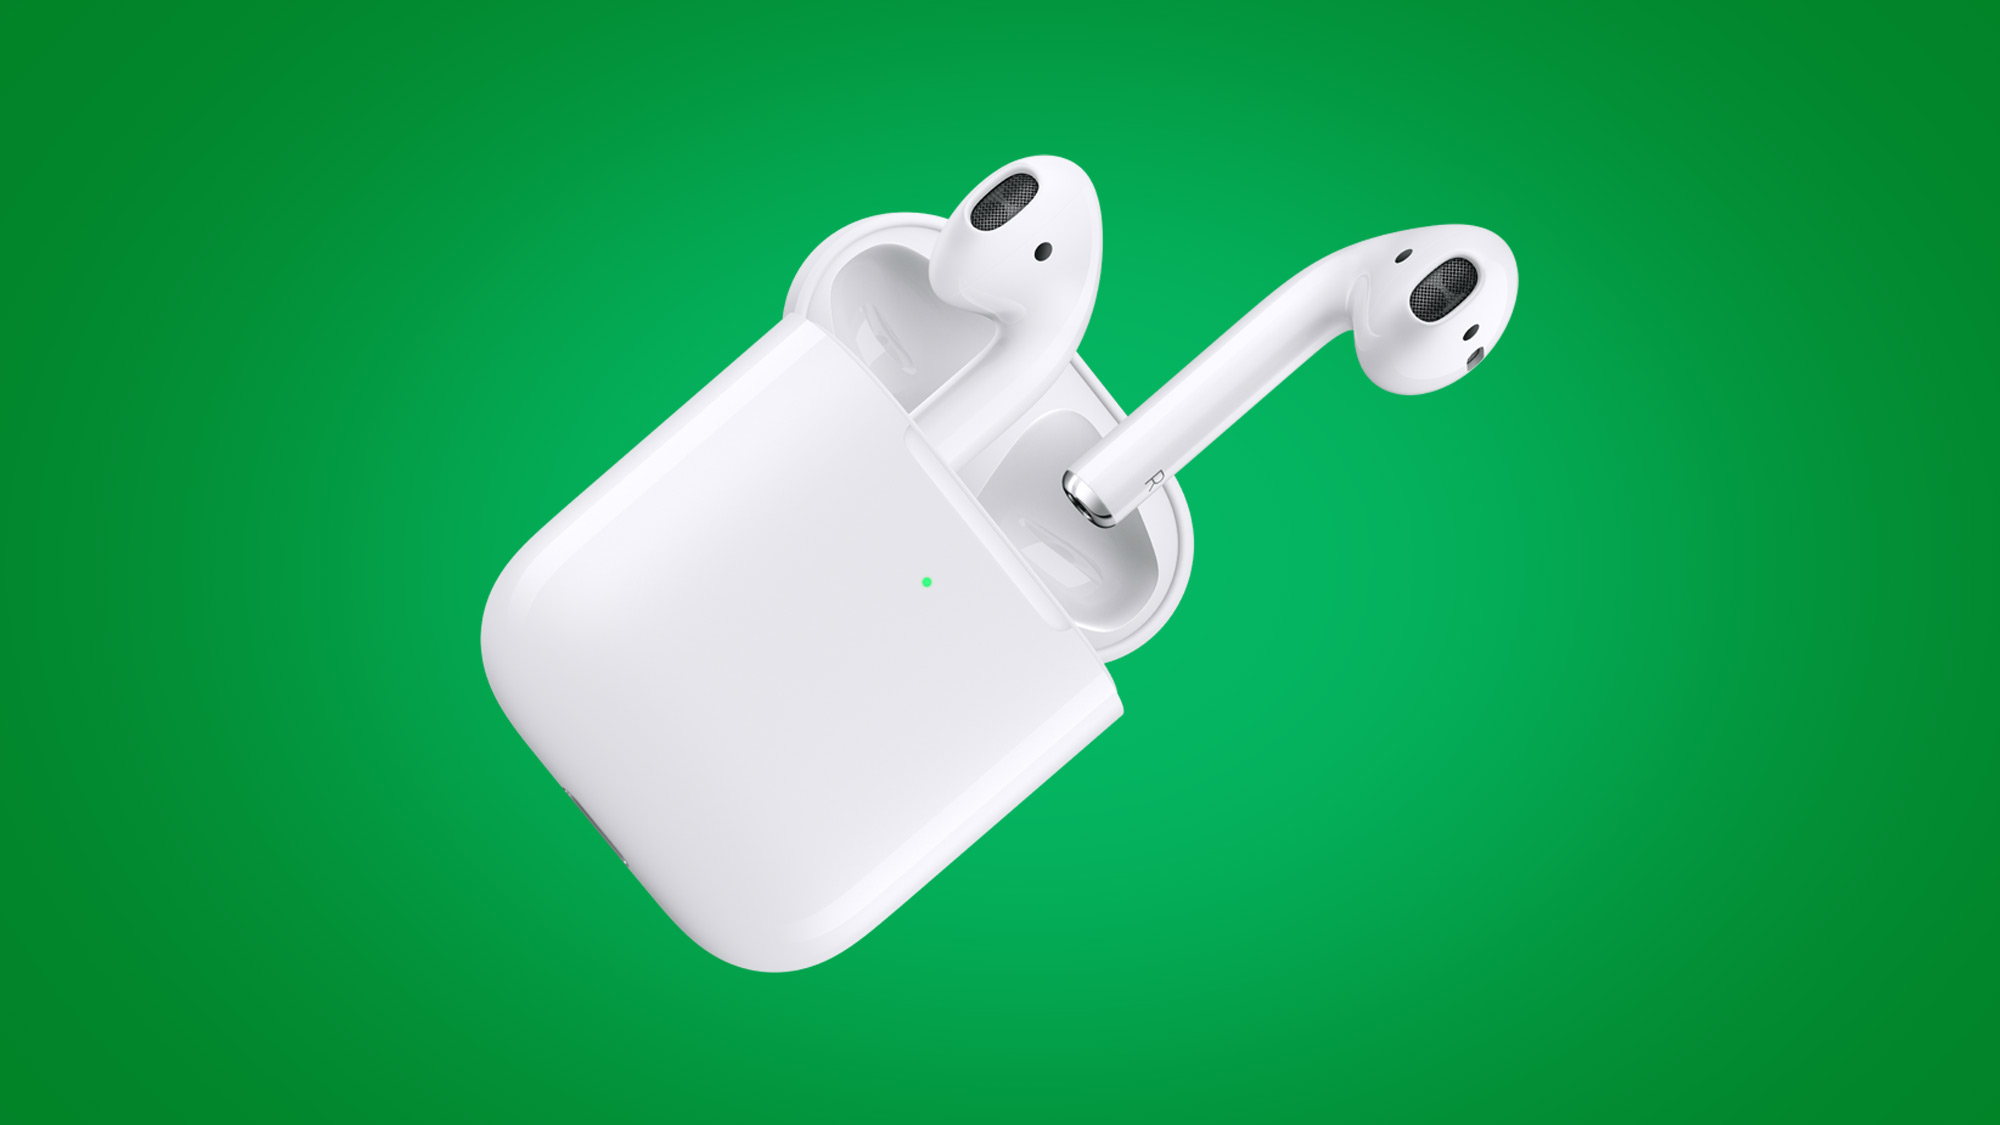 Apple AirPods sale: wireless charging model gets lowest